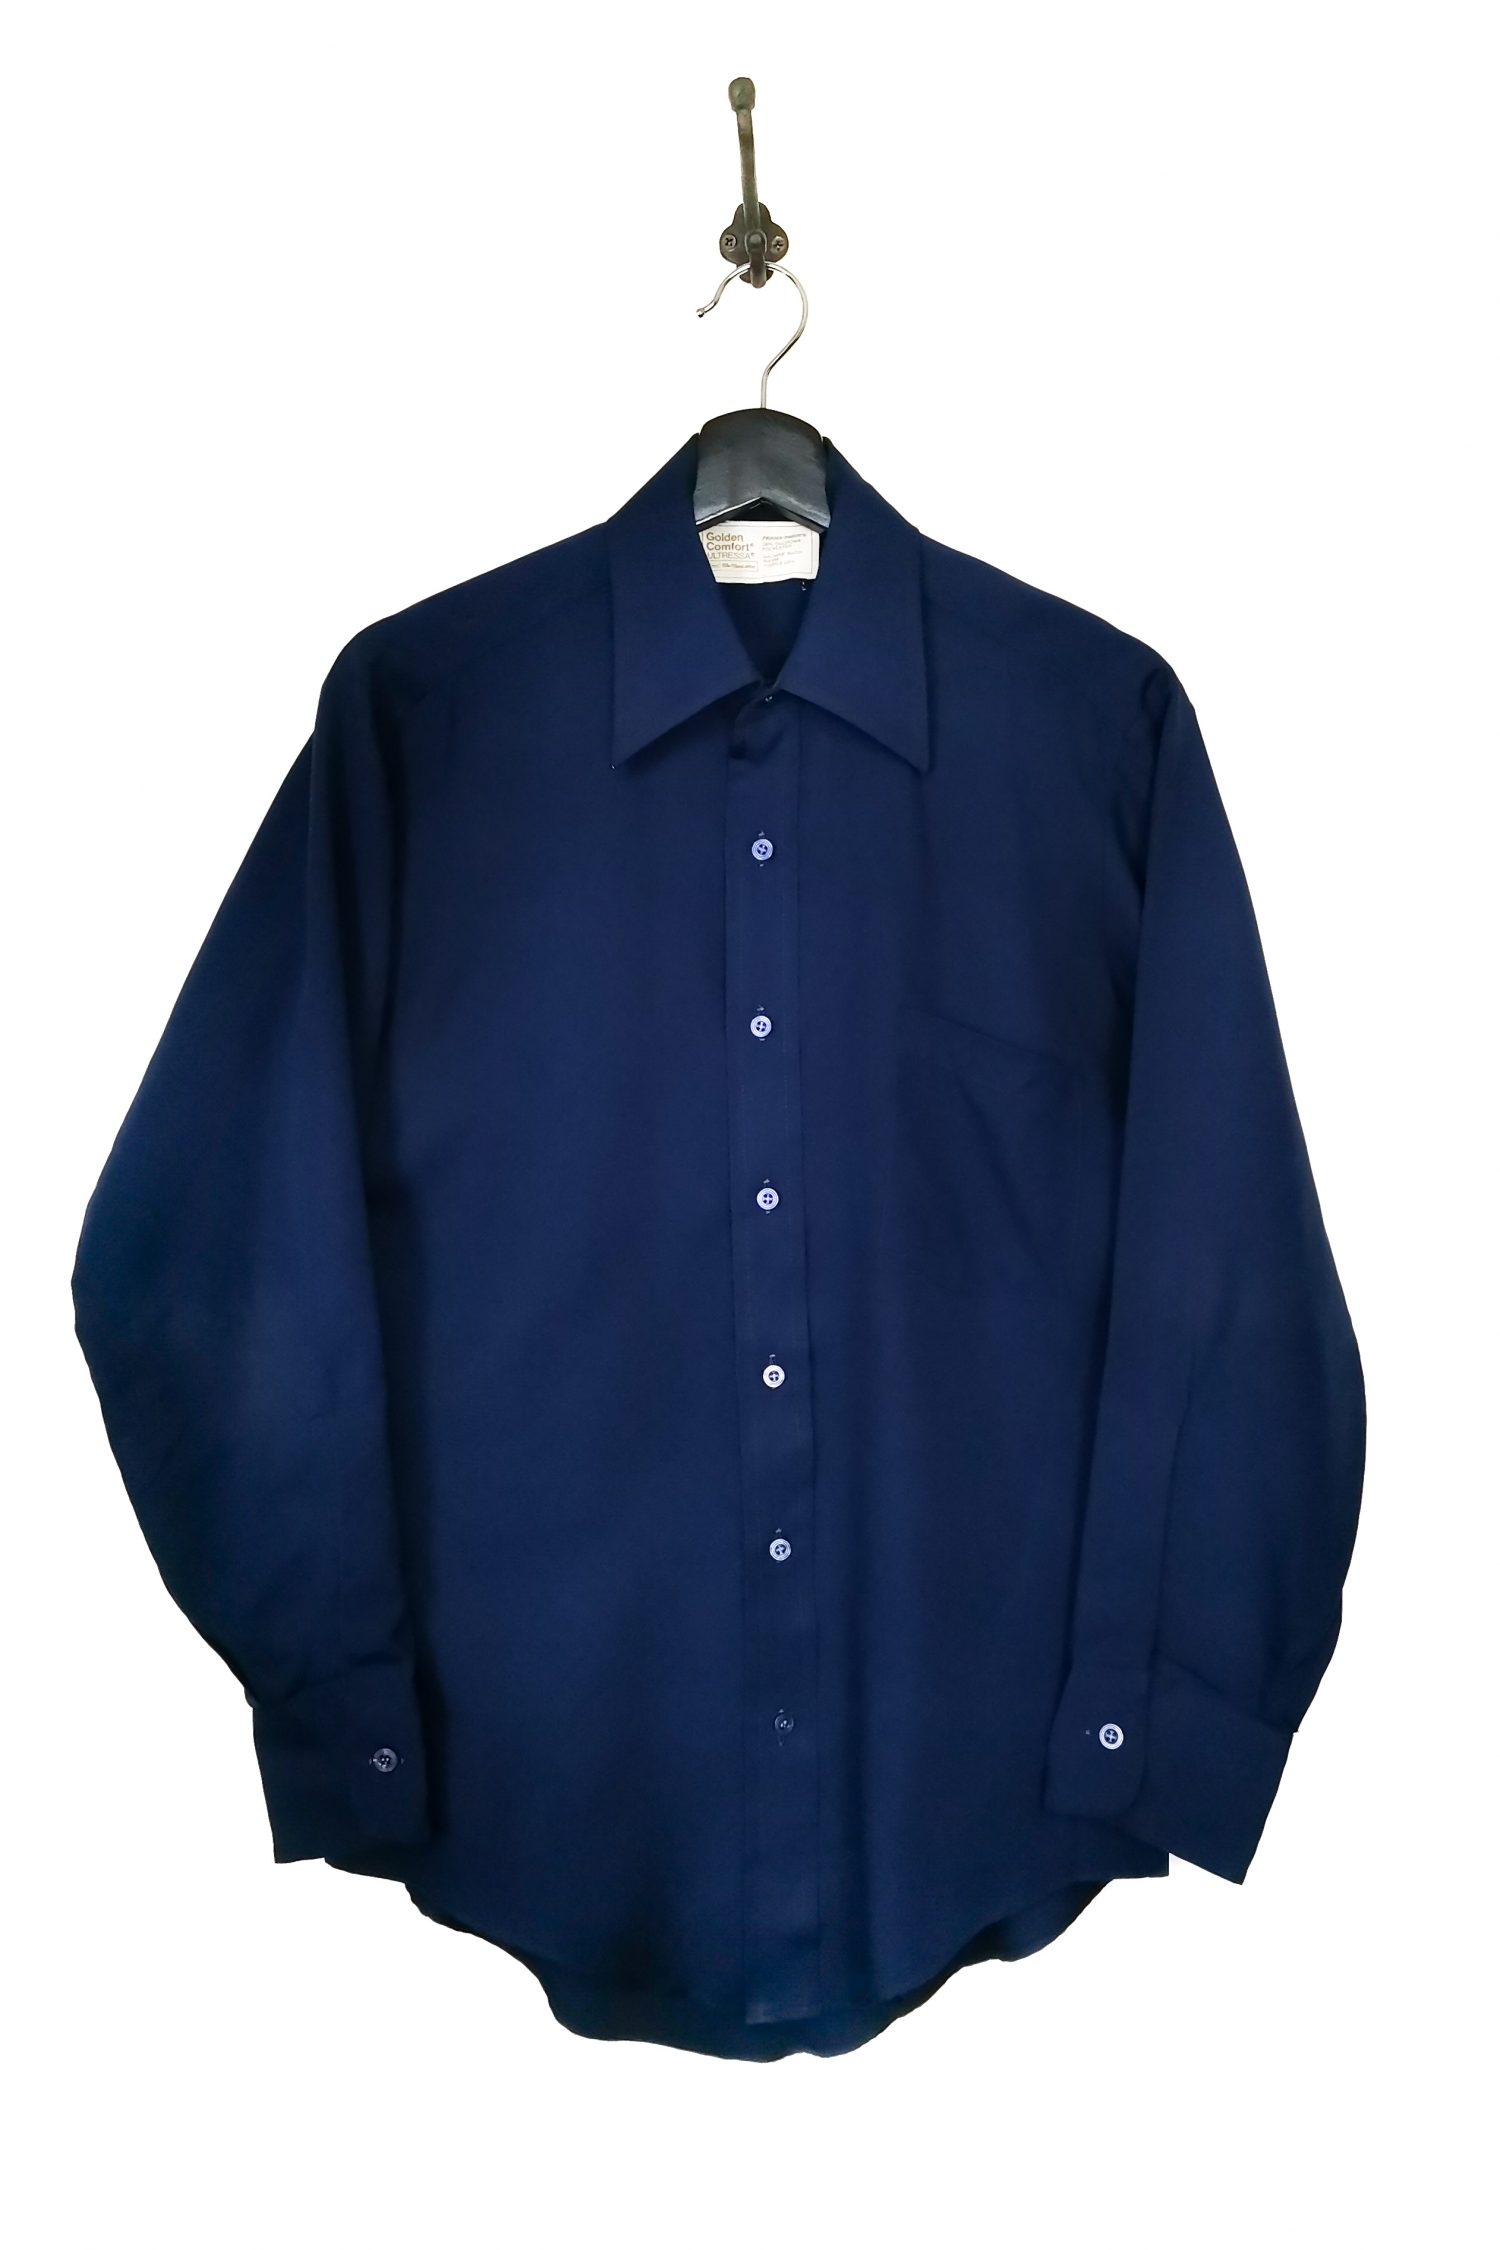 SEARS VINTAGE DRESS SHIRT_DEAD STOCK_M-11